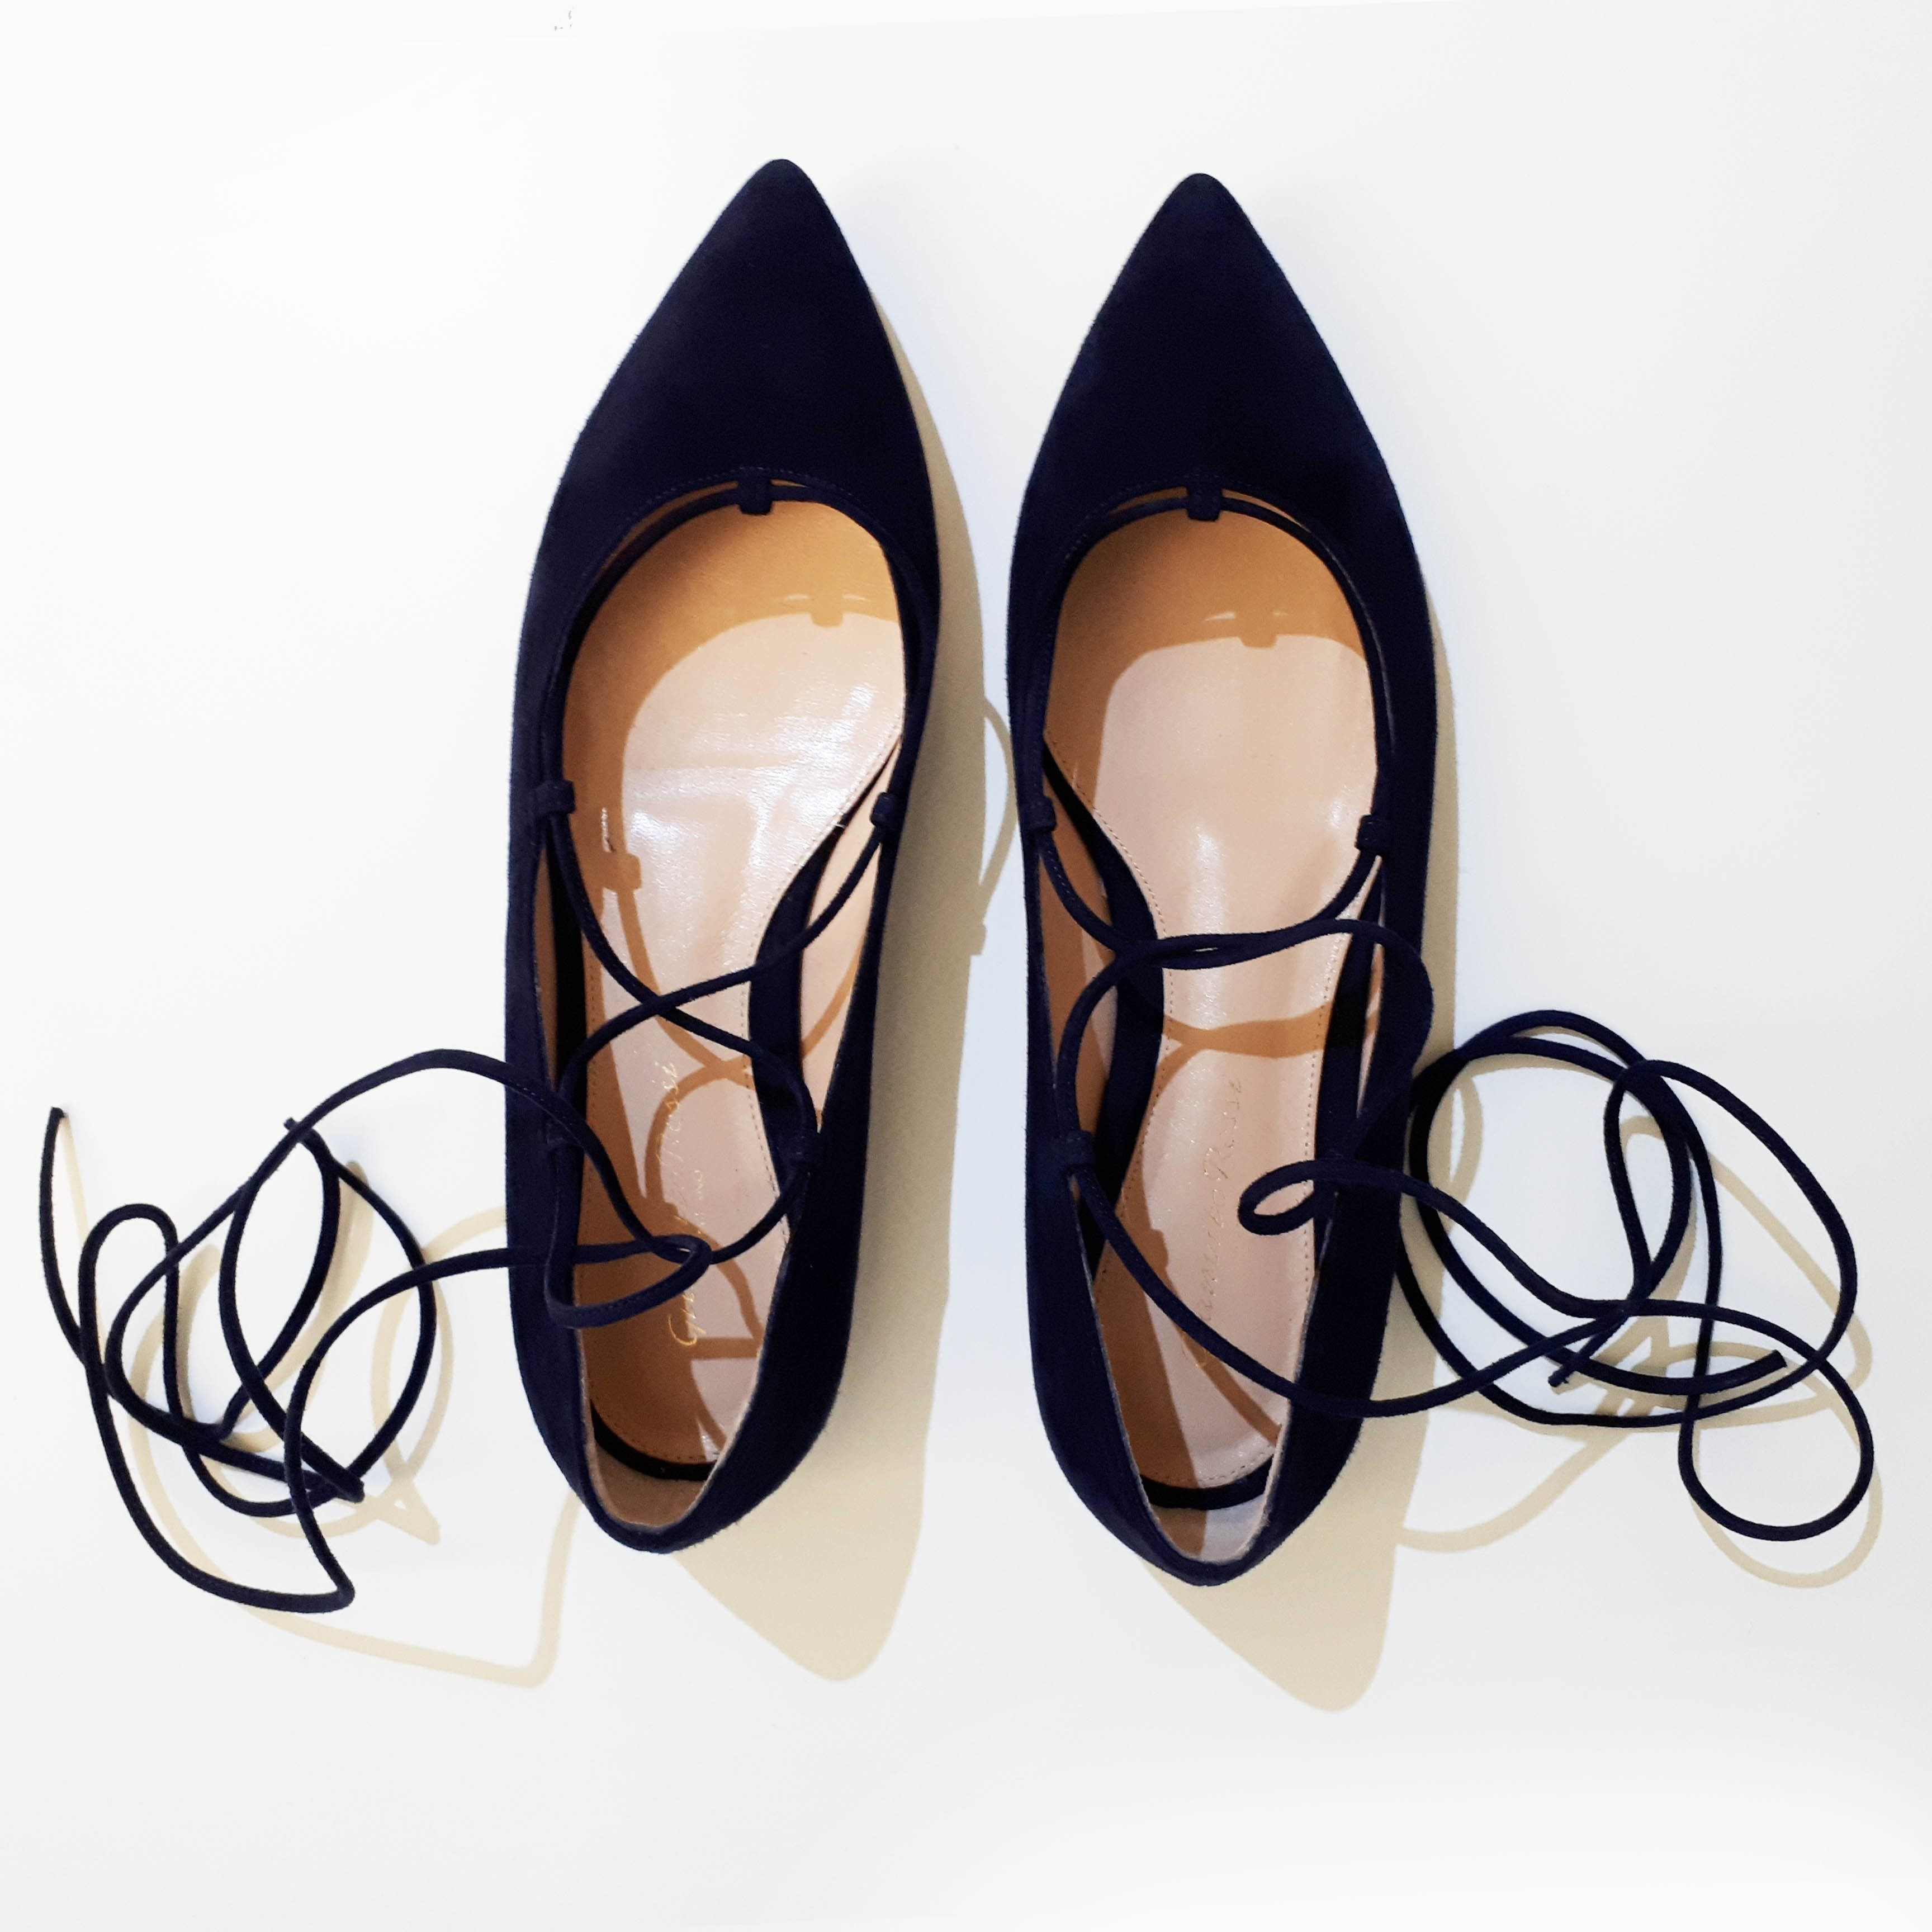 Gianvito Rossi Blue Pointed Toe Lace-up Flats